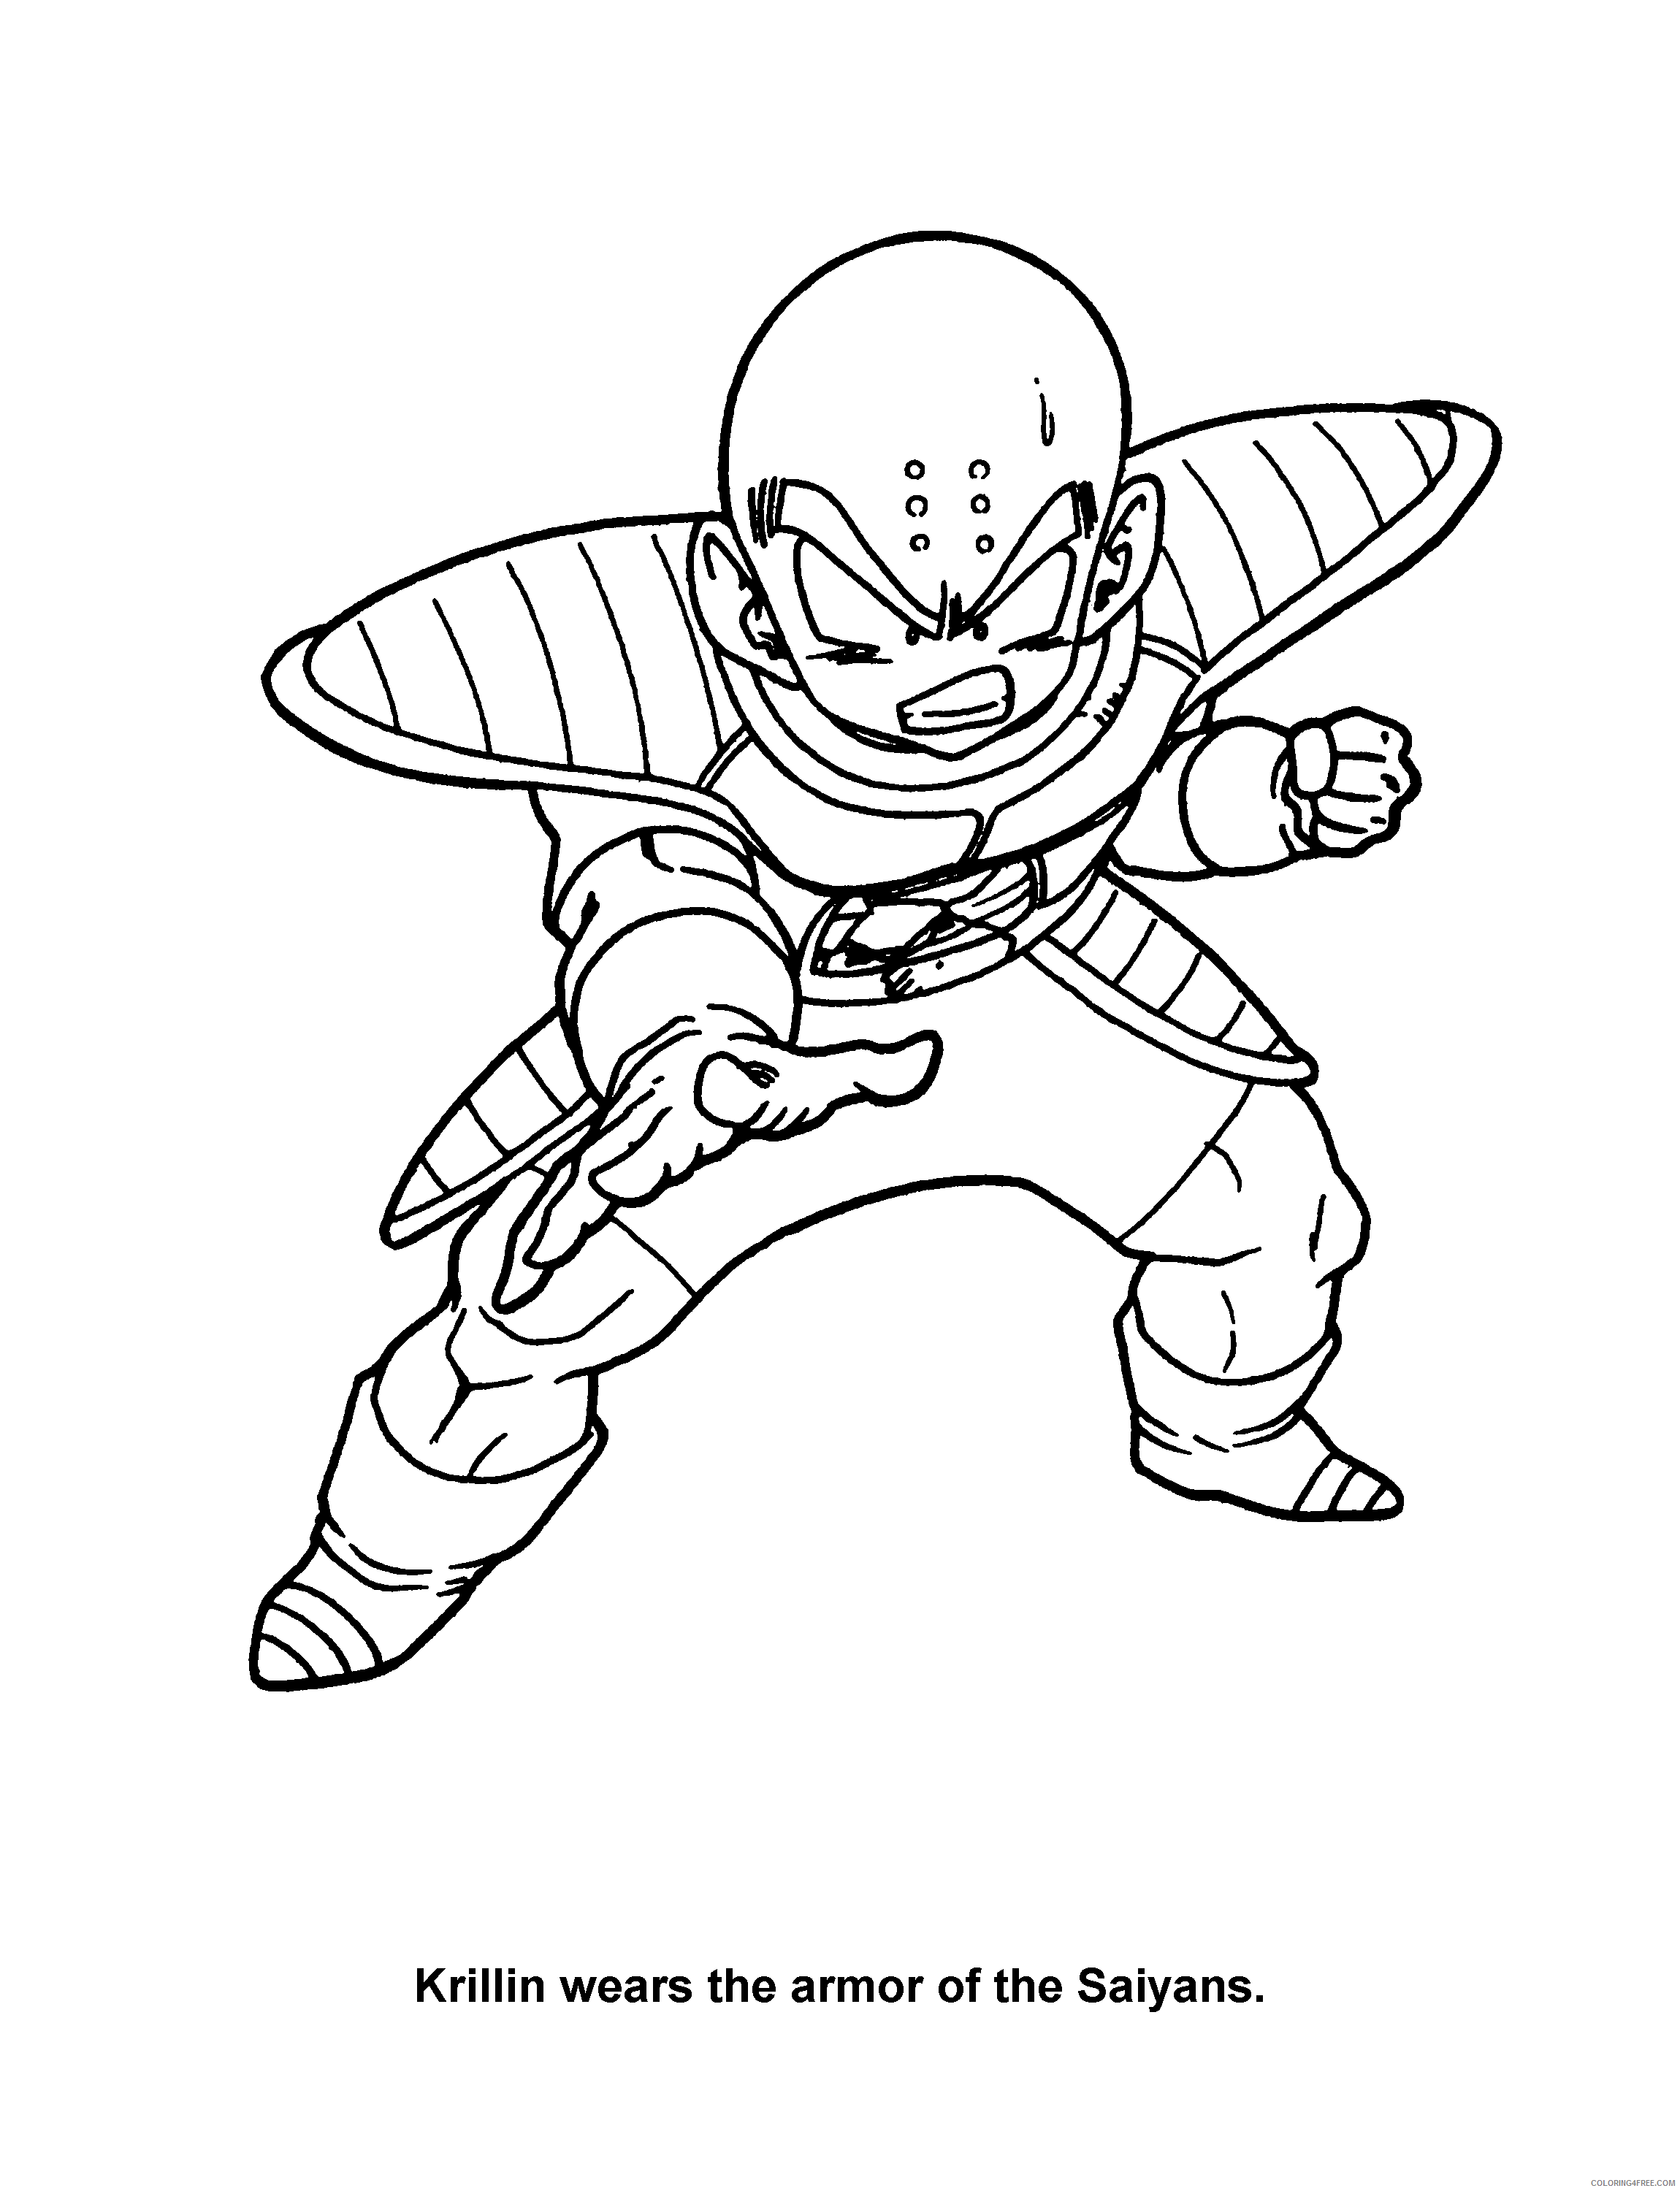 013 Dragon Ball Z Krillin Wears The Armor Of The Saiyans Printable Coloring4free Coloring4free Com